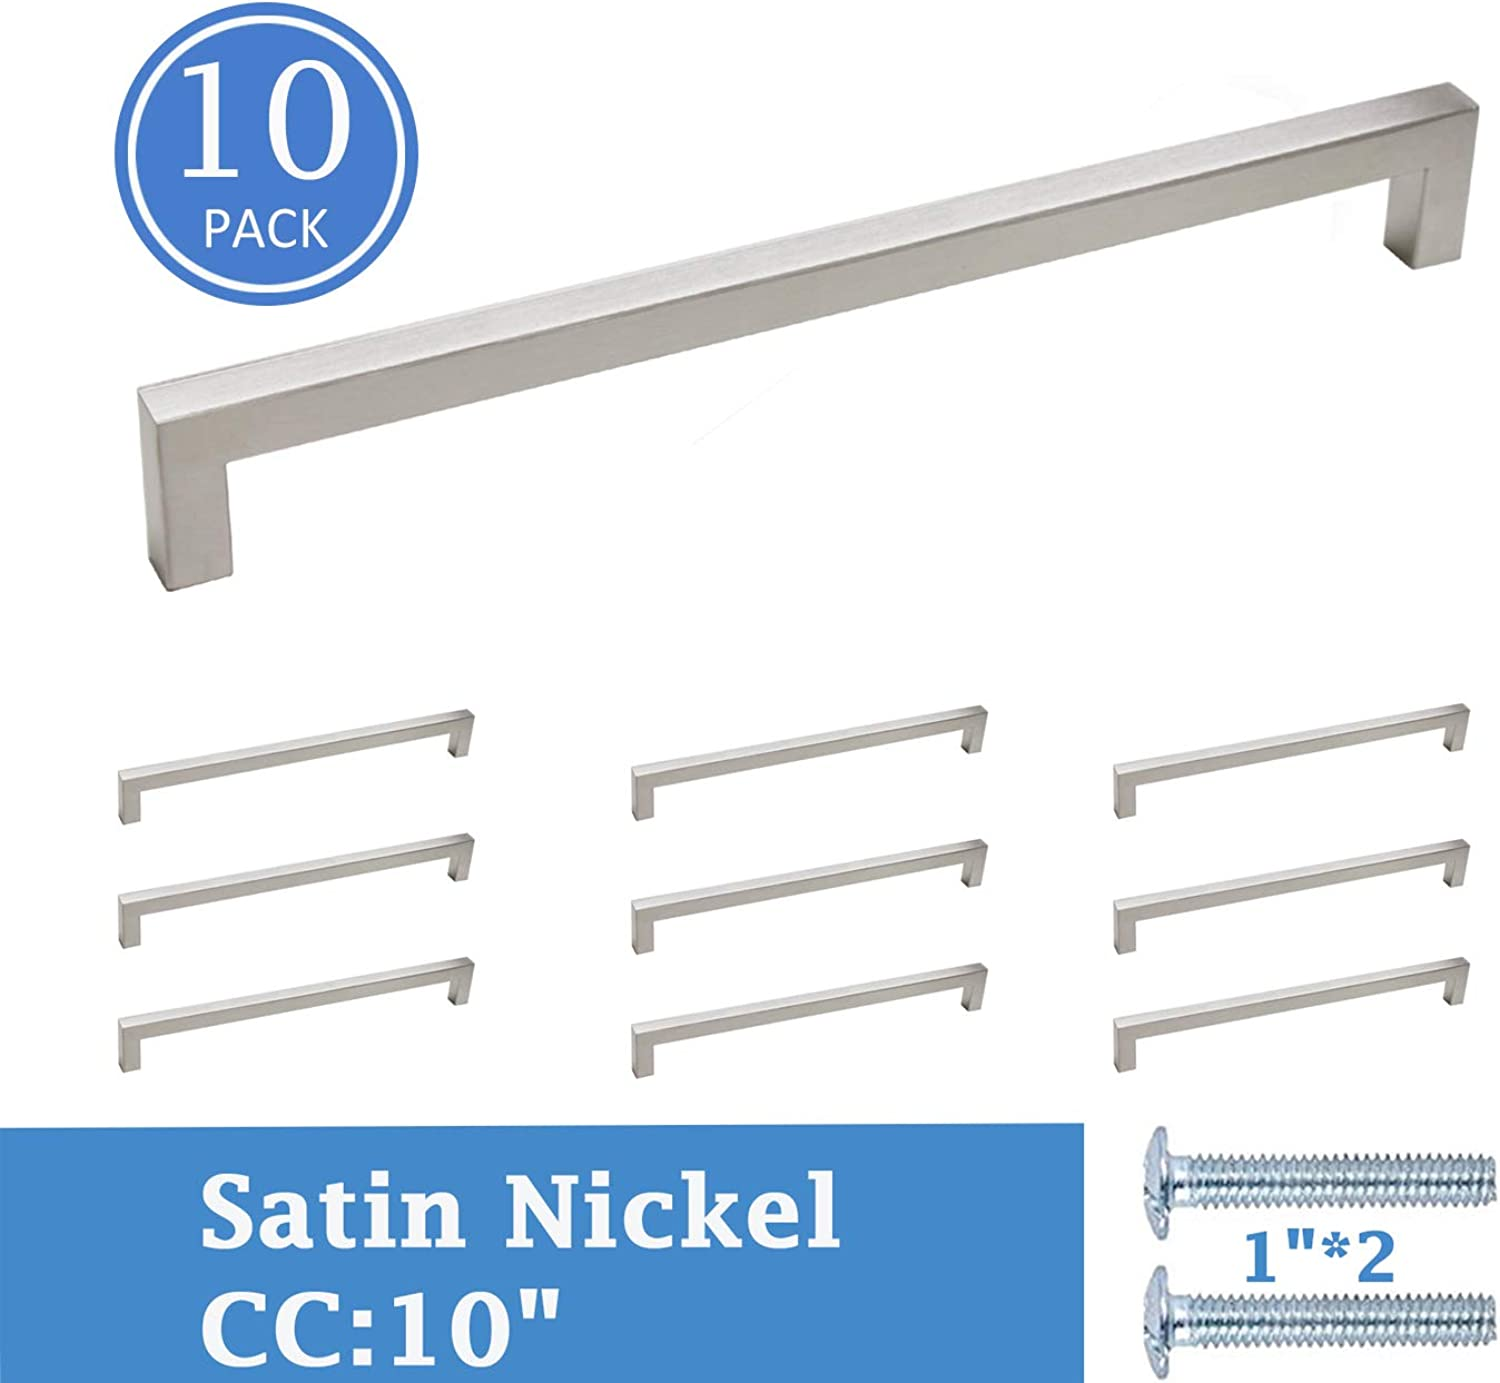 Knobonly Brushed Nickel 0.48  Square Cabinet Hardware Drawer Pulls and Handes 10  Holes Distance, 10 Pack